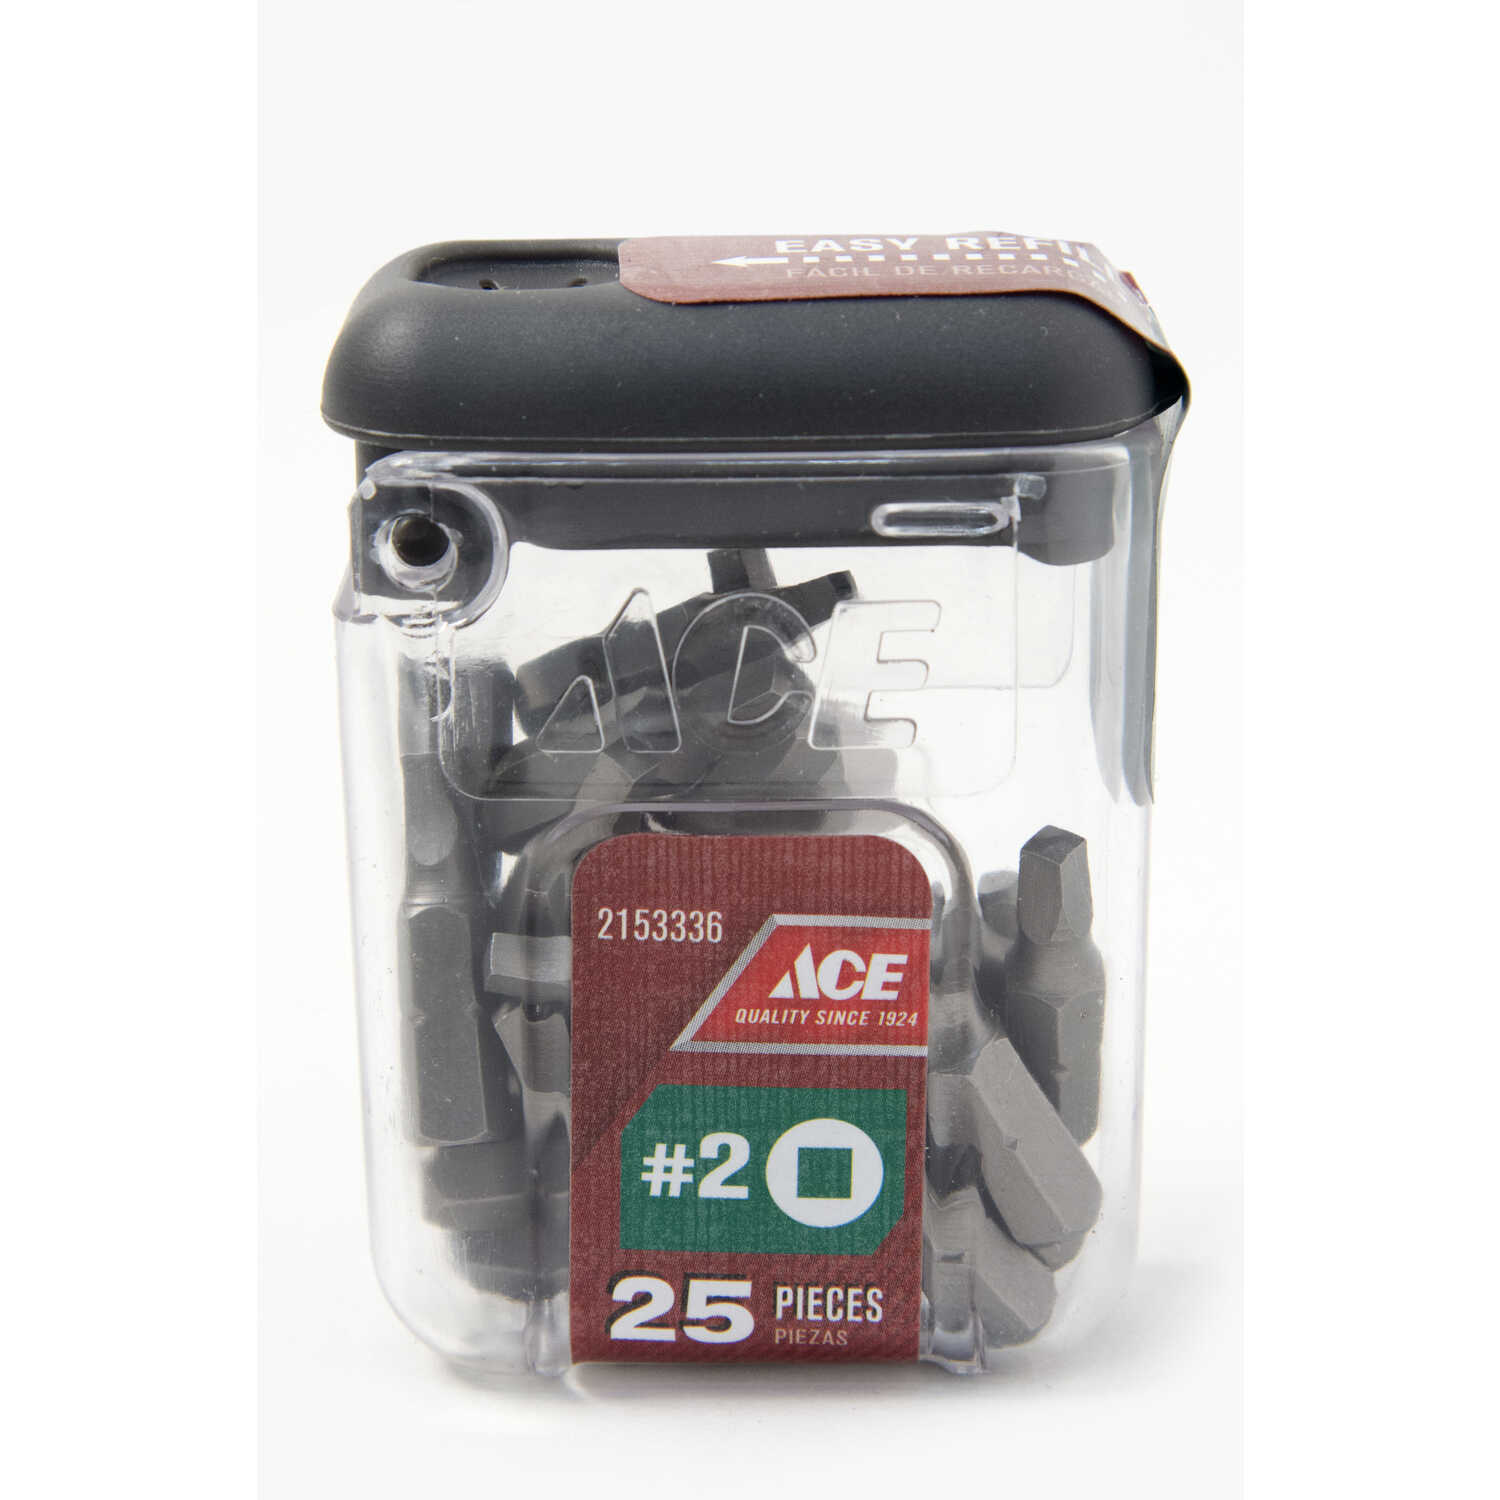 Ace  Square Recess  #2   x 1 in. L Insert Bit  S2 Tool Steel  1/4 in. Hex Shank  25 pc.